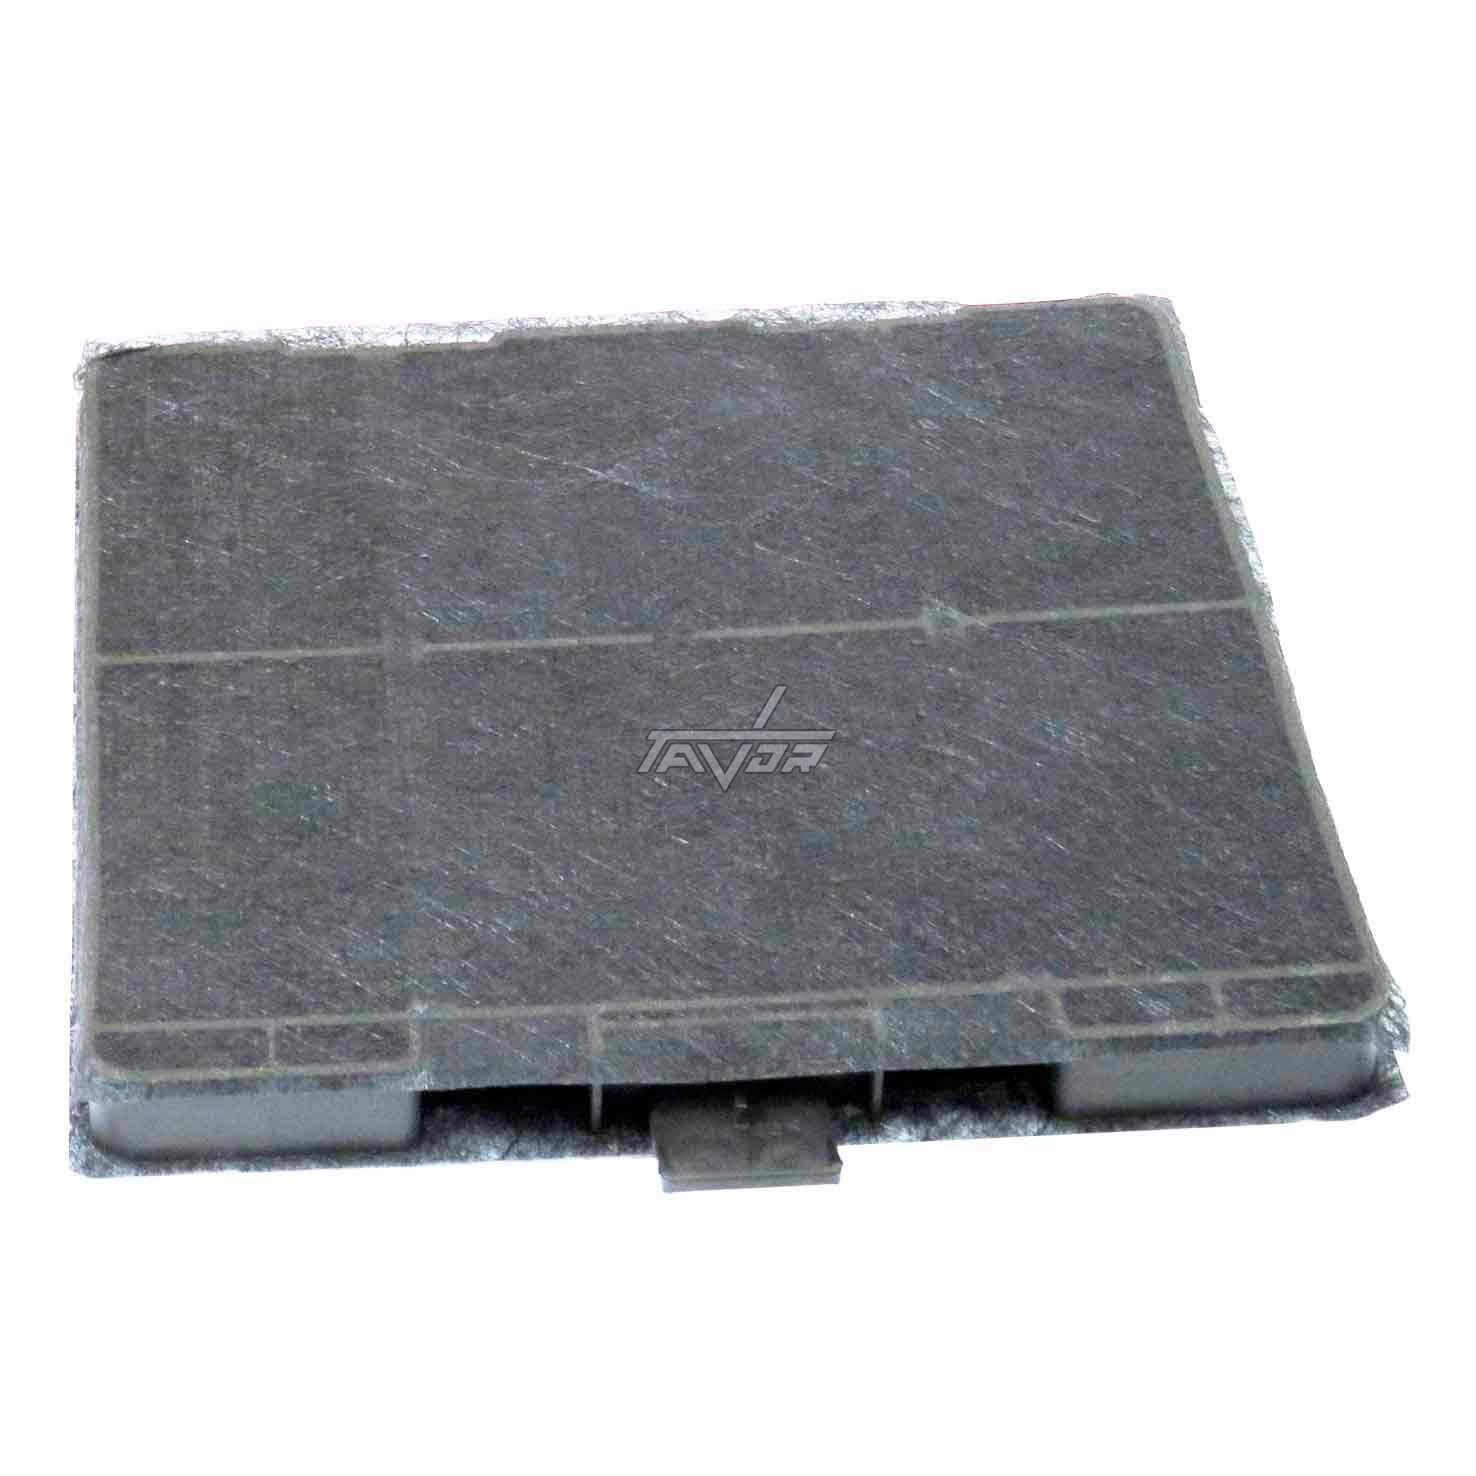 Rectangular Filter Of Extractor Hood Bosch 26.5X23.5